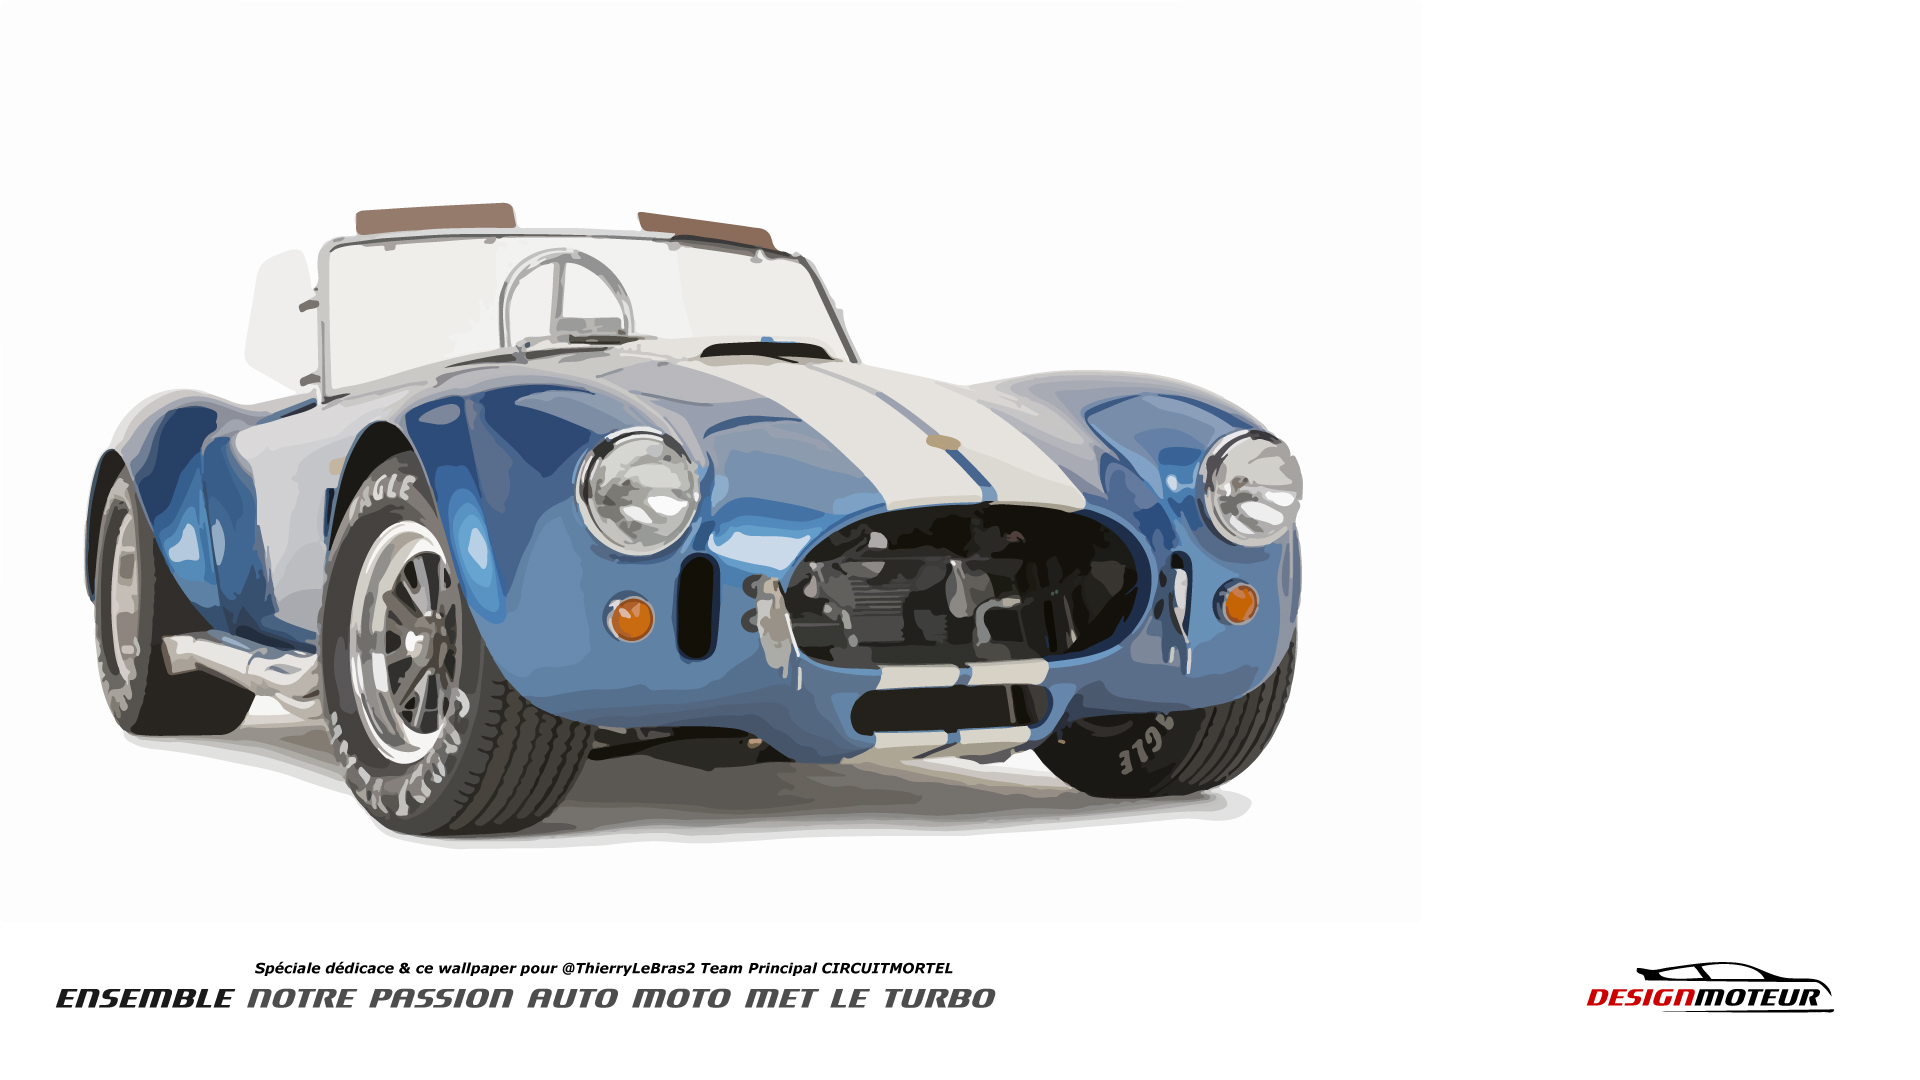 Wallpaper DESIGNMOTEUR 2015 – Shelby Cobra